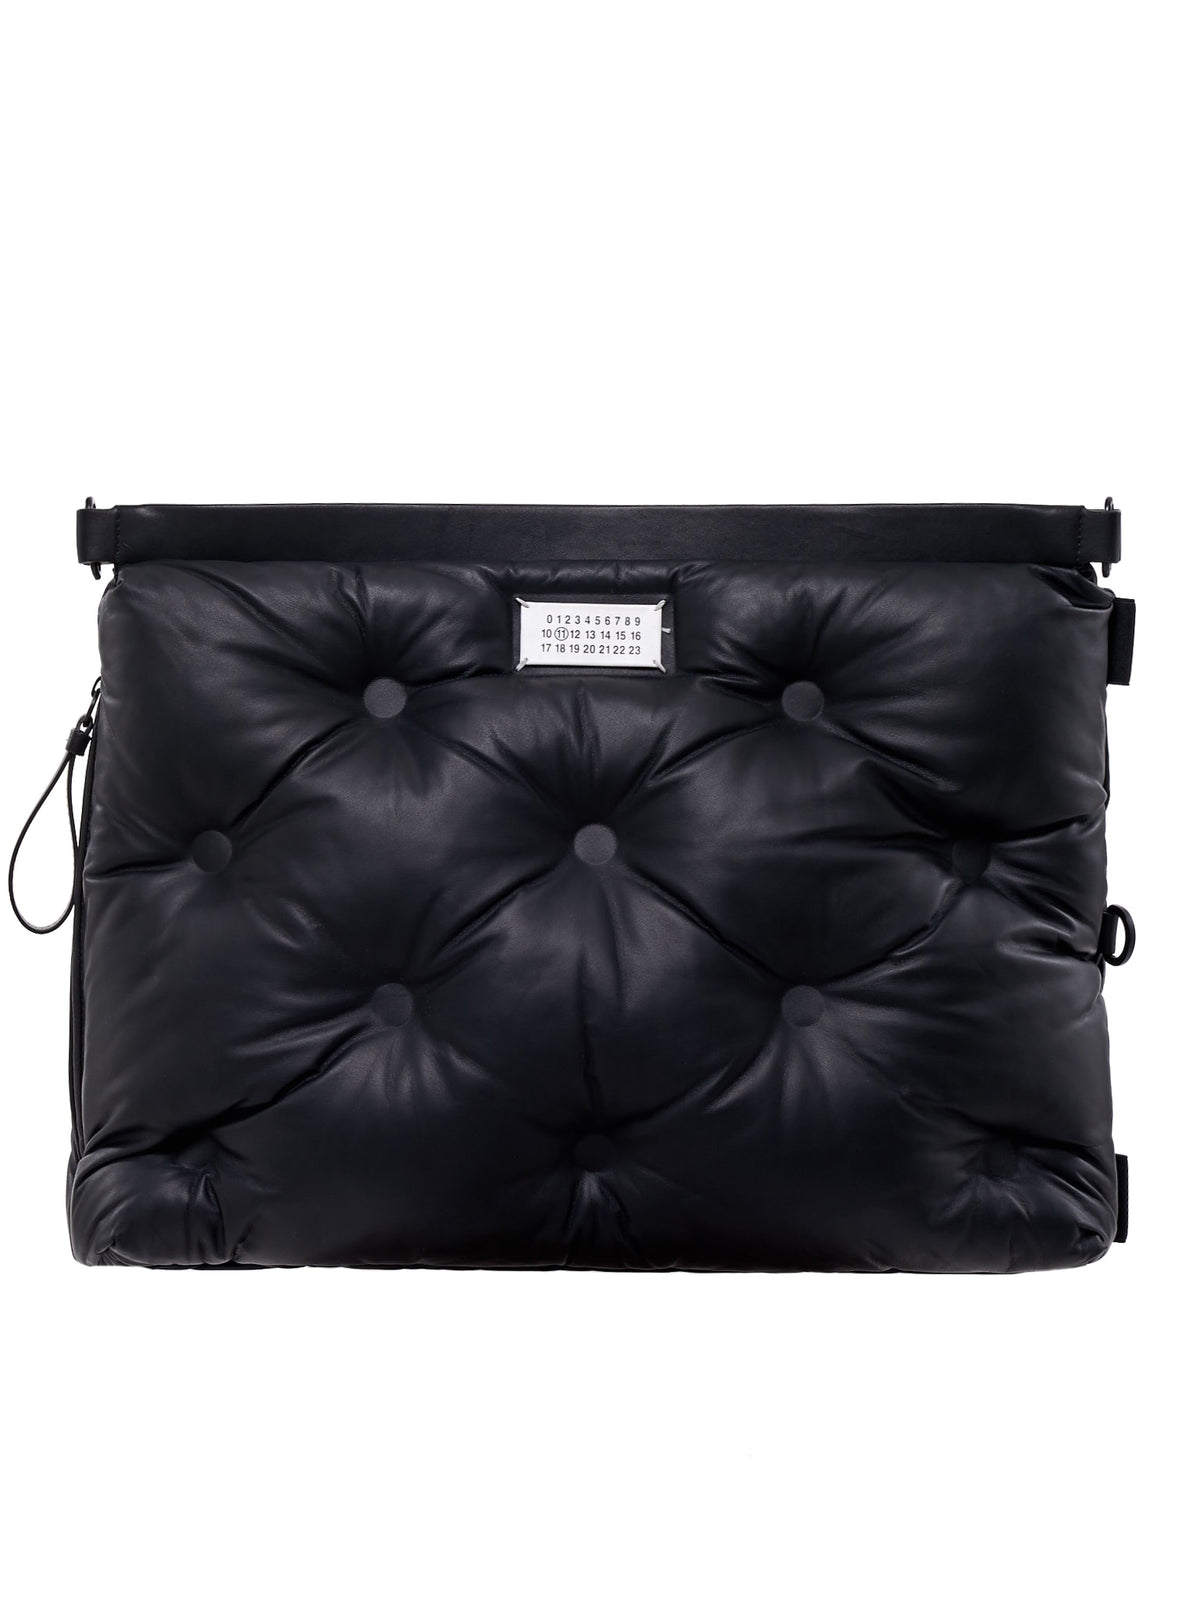 'Glam Slam' Shoulder Bag (S35WA0052-PR818-BLACK)